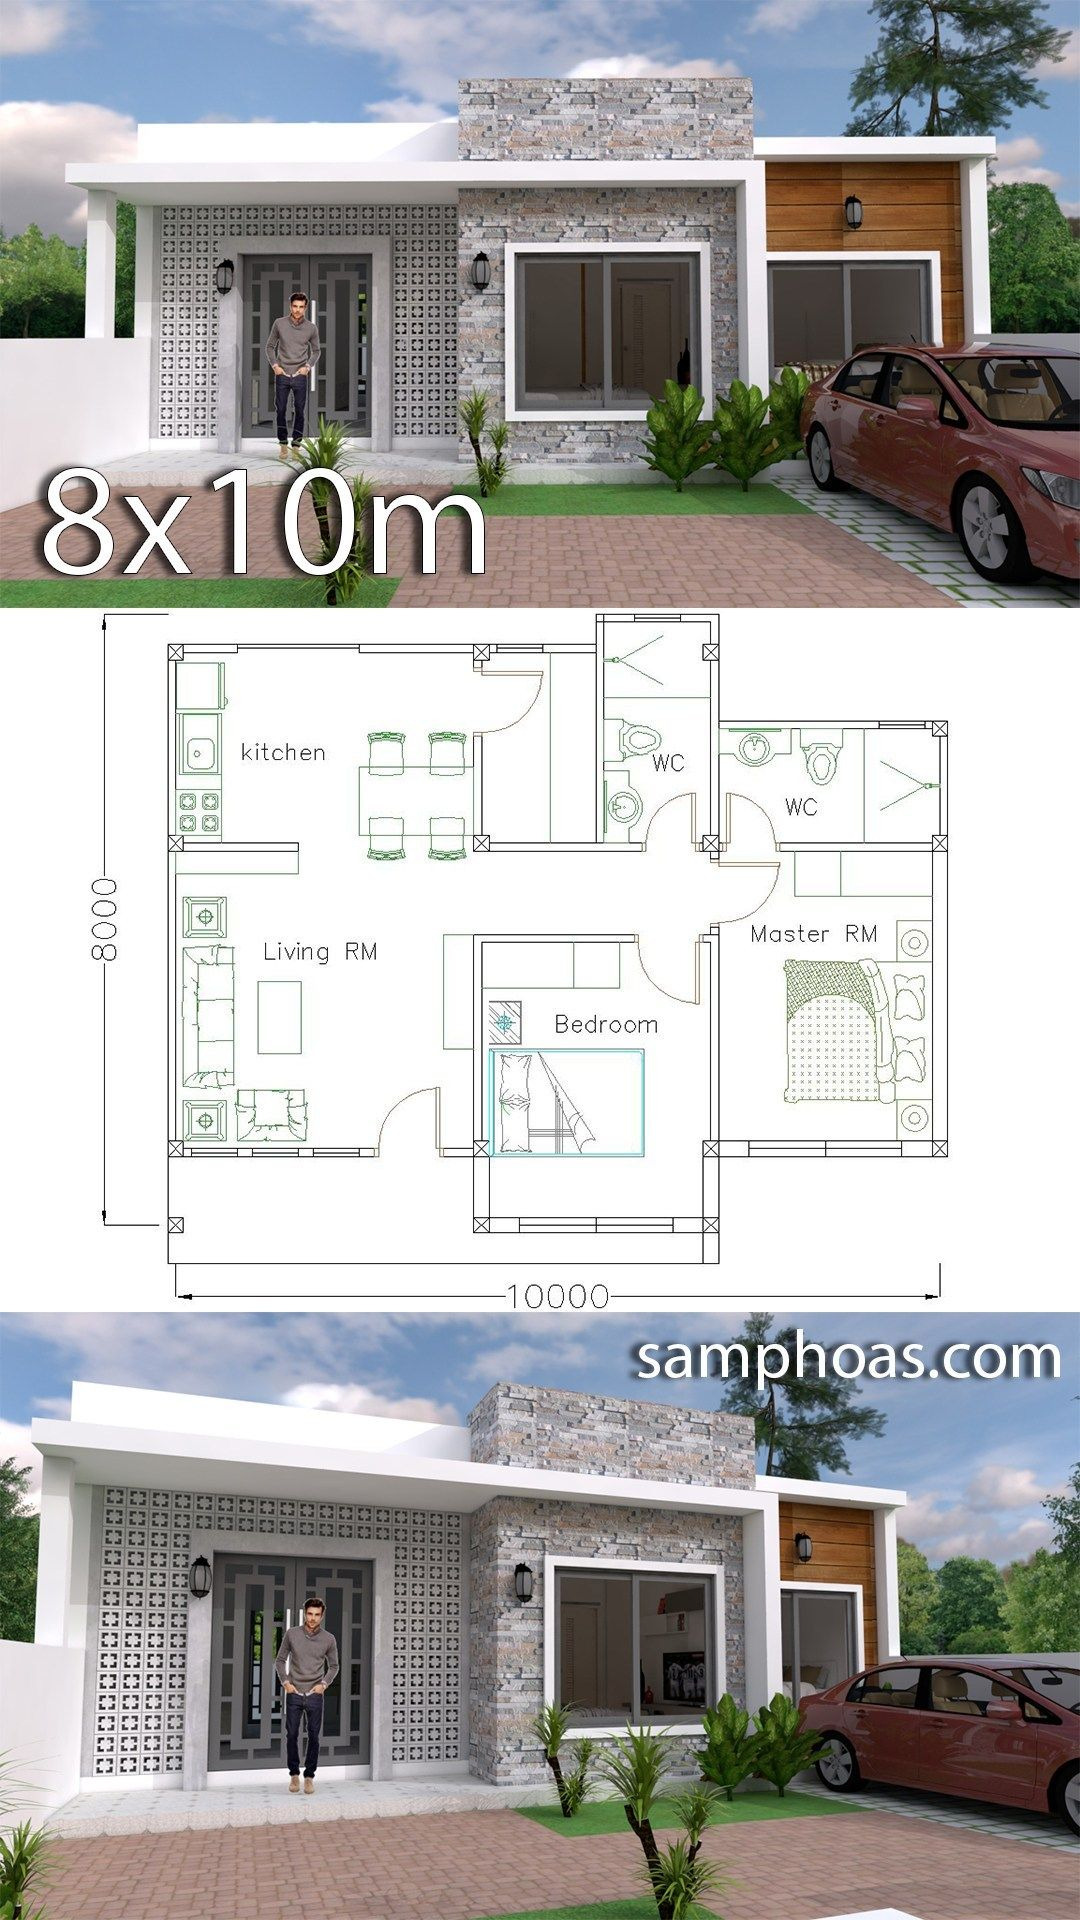 House Plans with Simple Roof Designs Lovely Simple Home Design Plan 10x8m with 2 Bedrooms